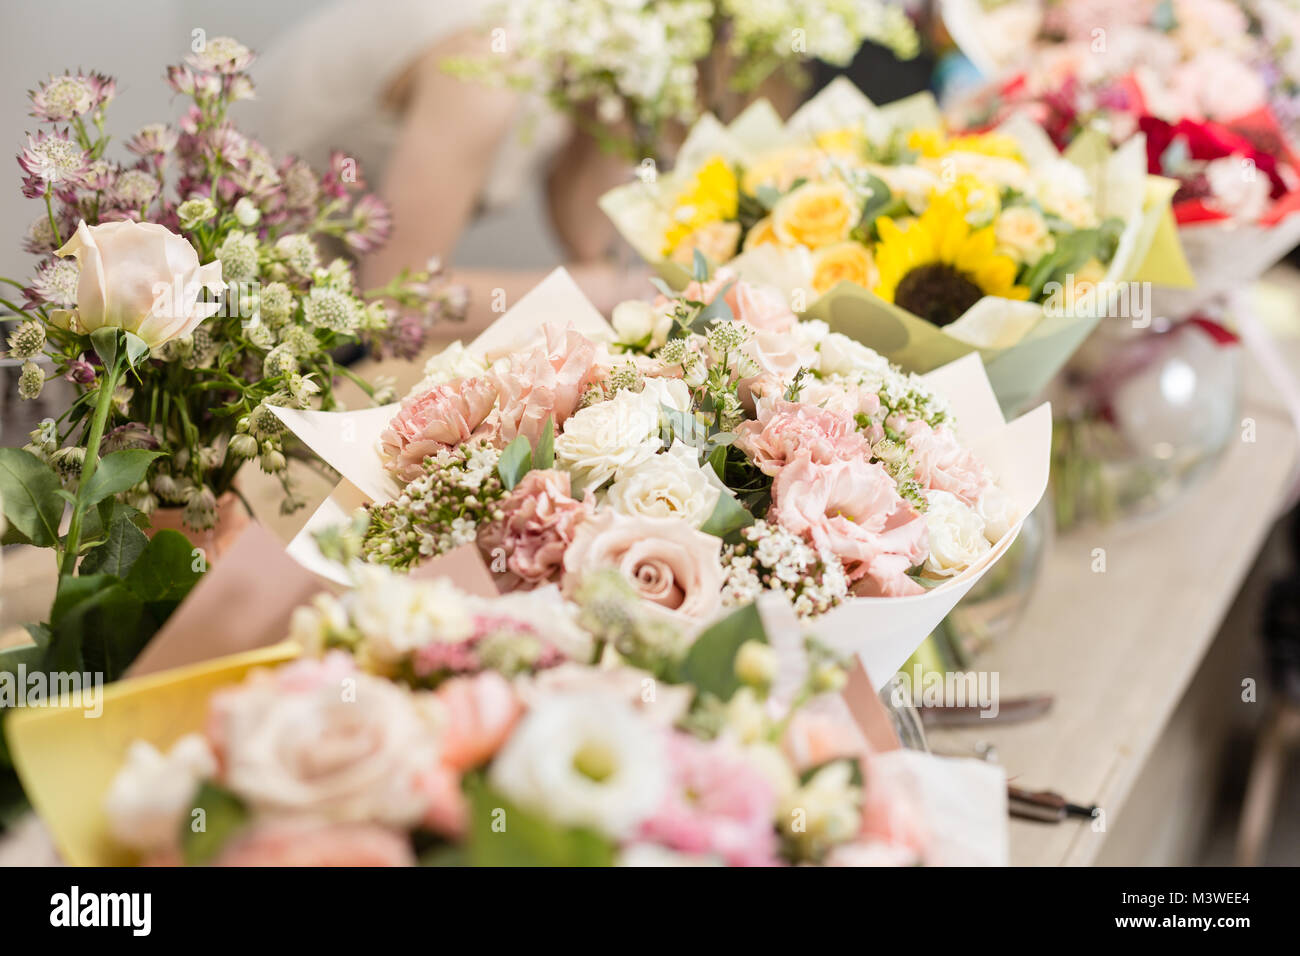 Bouquets on table, florist business. Different varieties fresh spring flowers. Delivery service. Flower shop concept. - Stock Image